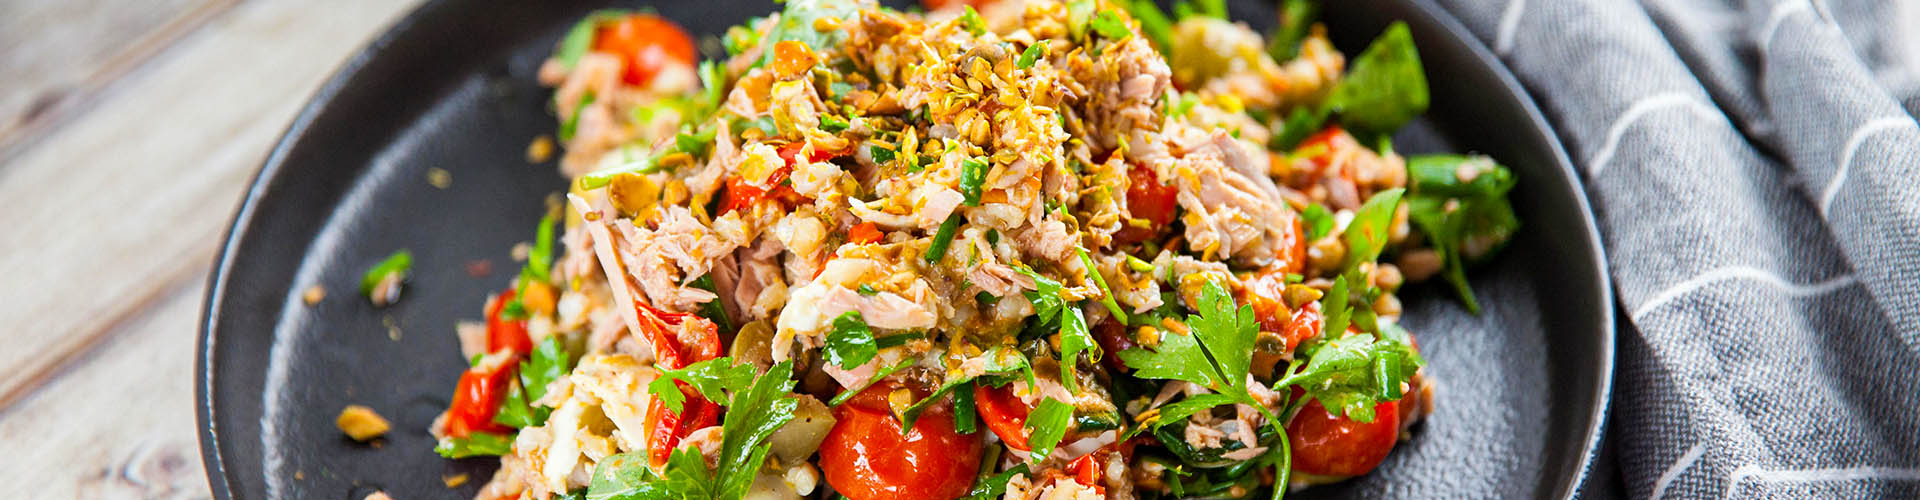 Slow Roasted Tomato, Buffalo Mozzarella Tuna Salad